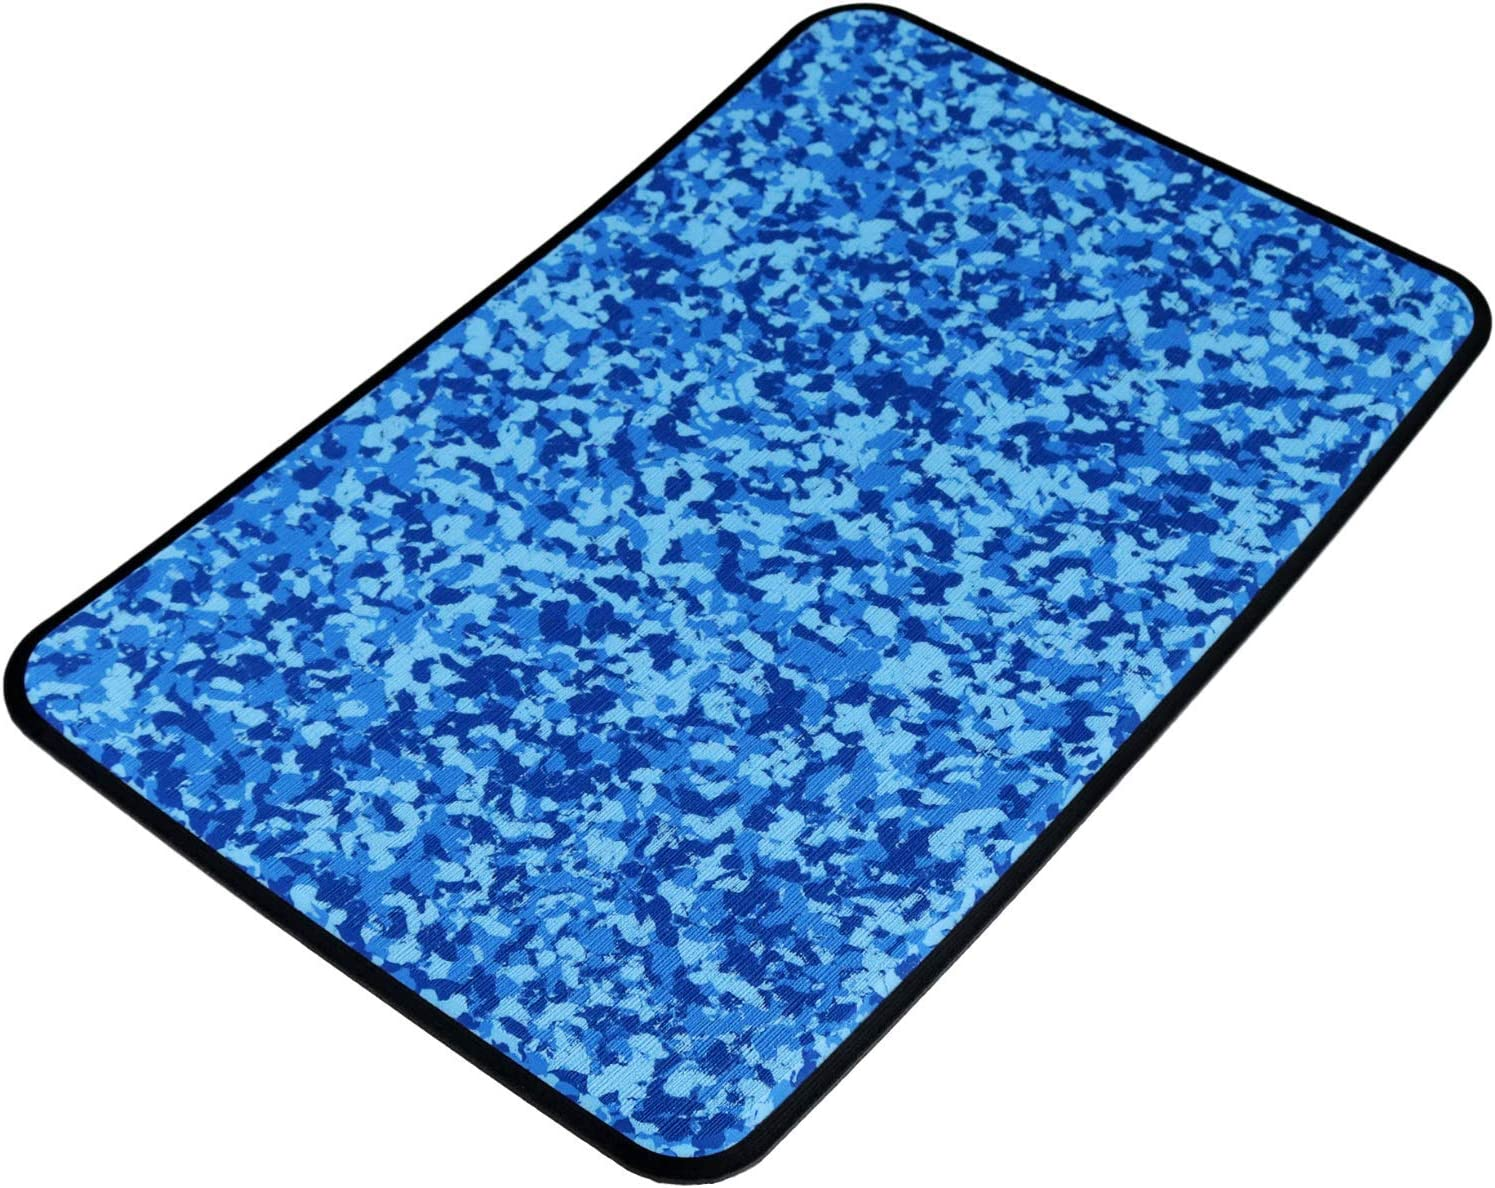 SeaDek- Outer Route Yeti Roadie Pad Cooler Foam Pad Mat Cushion Slip Resistant, Comfortable, Cooler Accessories Sit or Stand for Comfort 20qt.